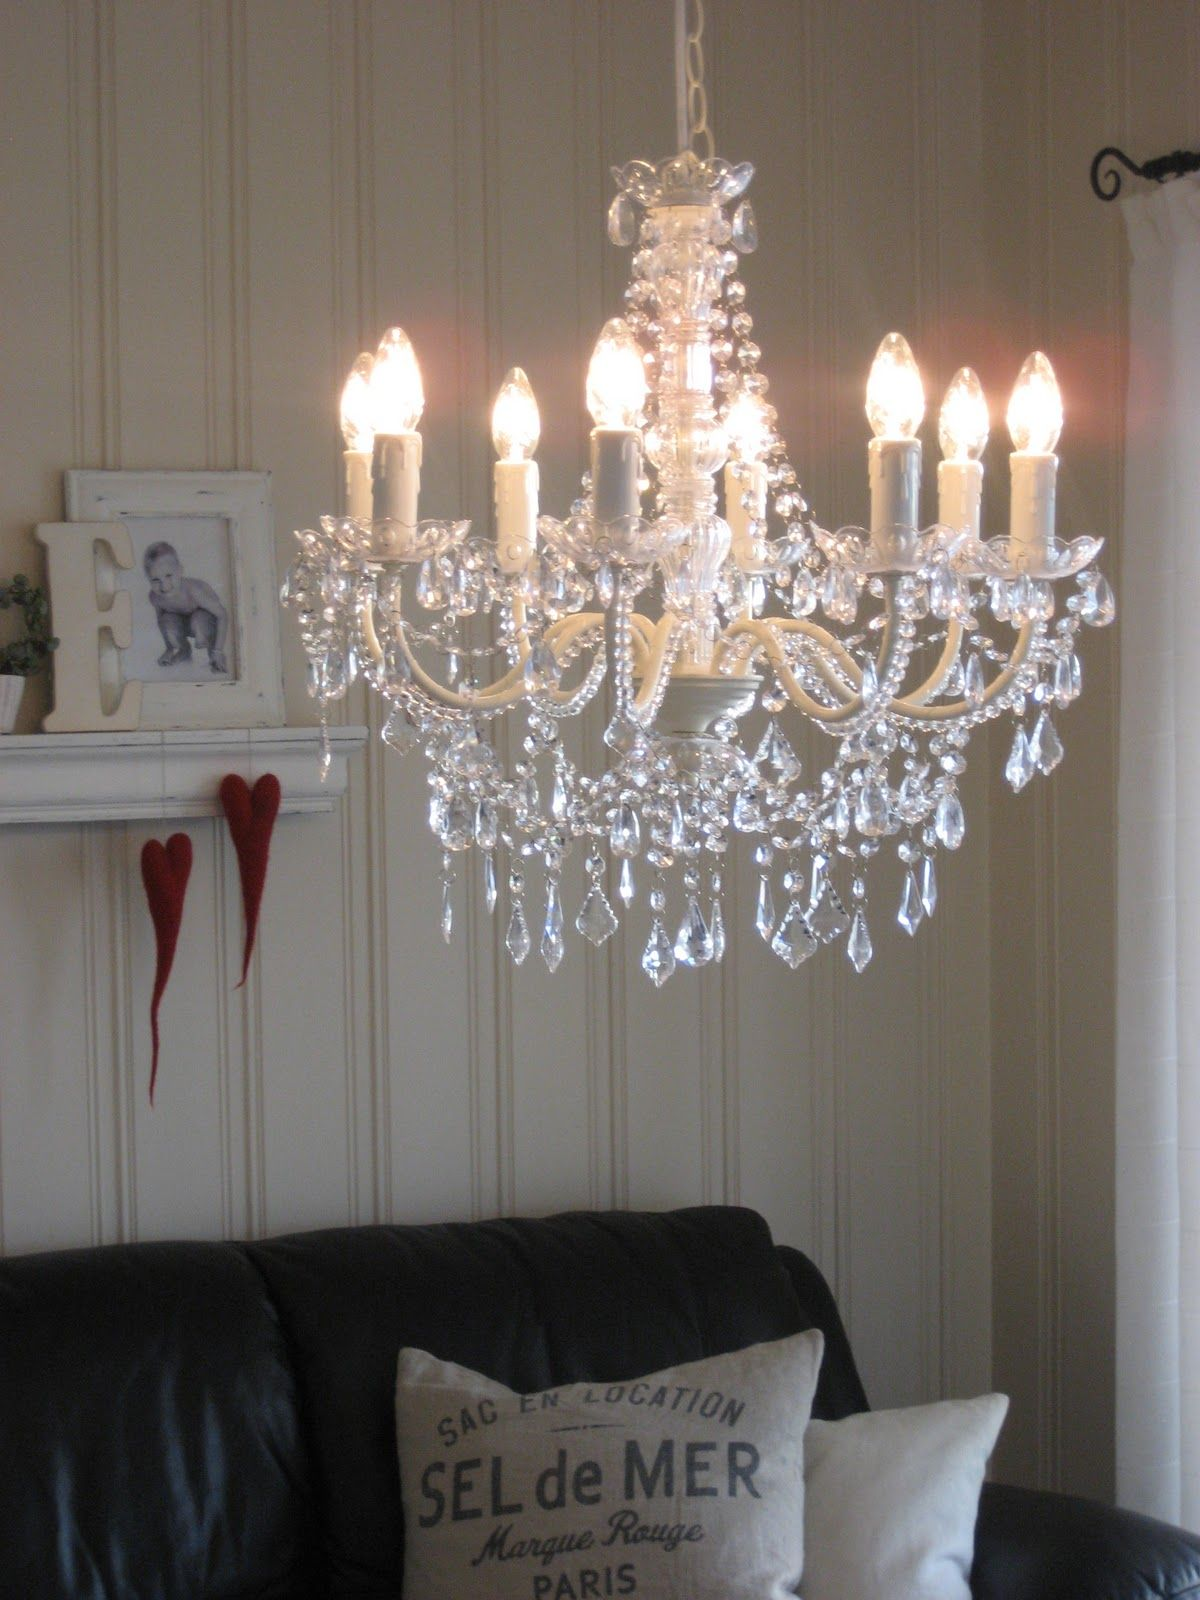 Lisbeth dahl chandelier love this designer shabby chic loves lisbeth dahl chandelier love this designer arubaitofo Choice Image